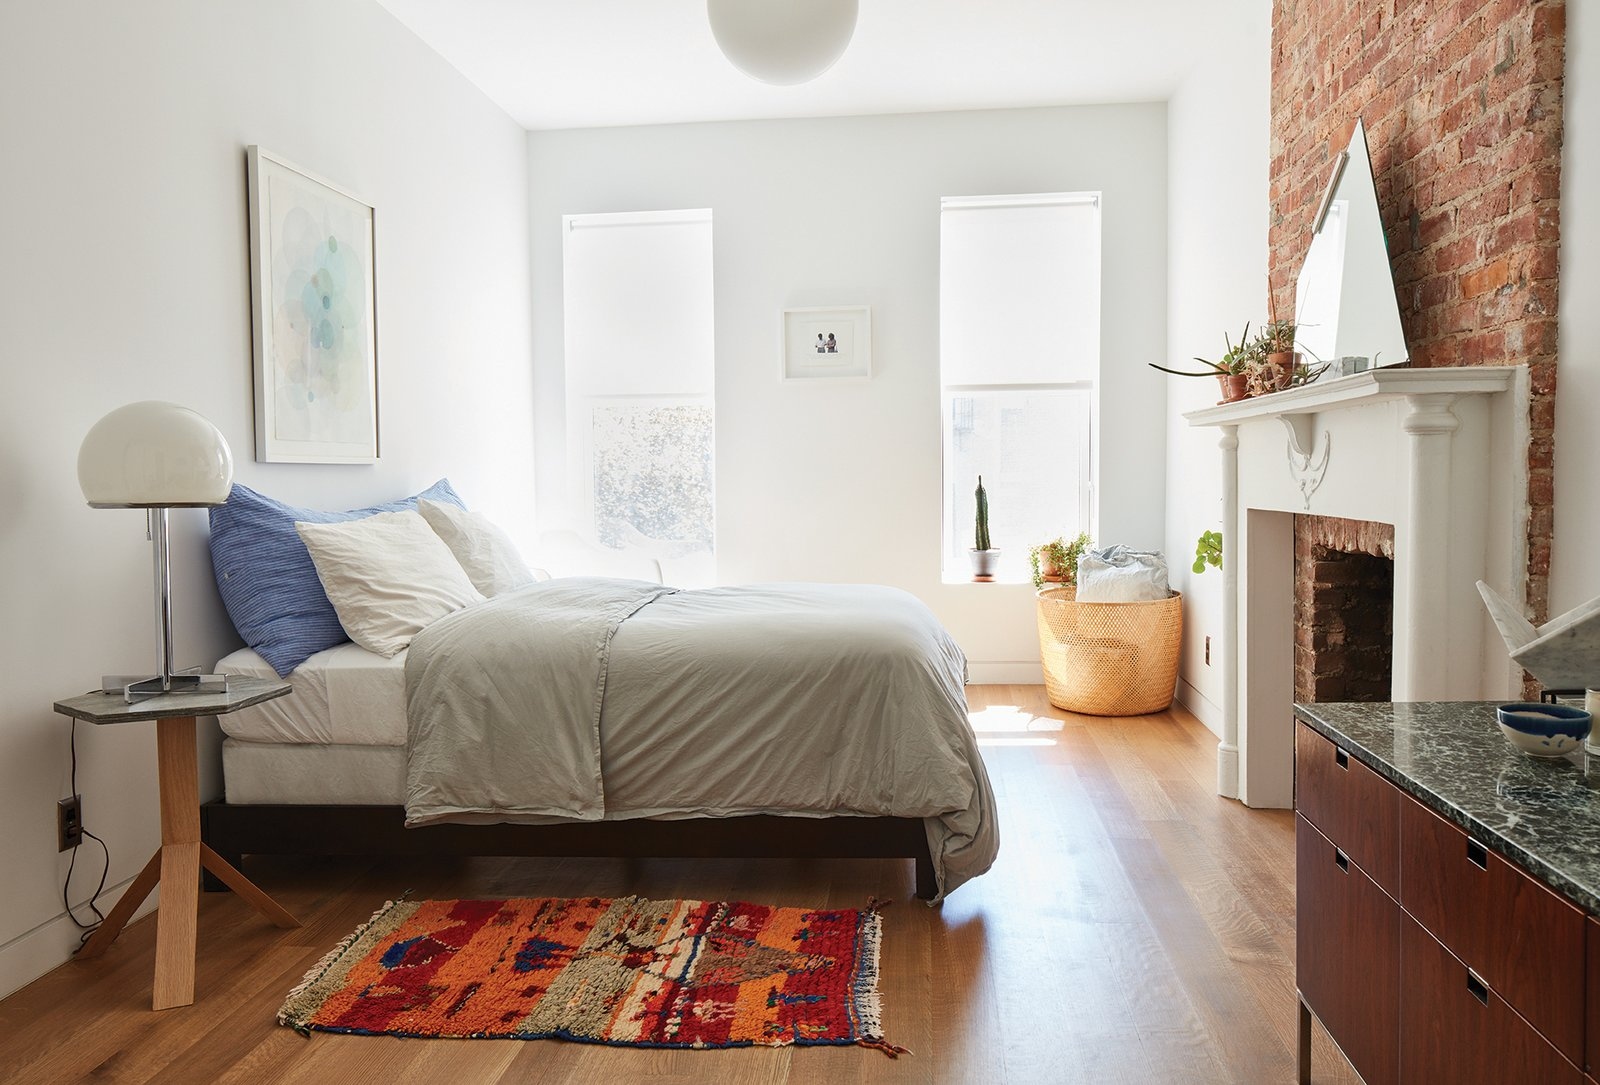 Bedroom, Pendant Lighting, Bed, Table Lighting, and Medium Hardwood Floor The furnishings reflect an eclectic mix of old and new. In a second-floor guest room, a bedside table by Fort Standard holds a vintage lamp.  Photo 6 of 16 in Forever Changes